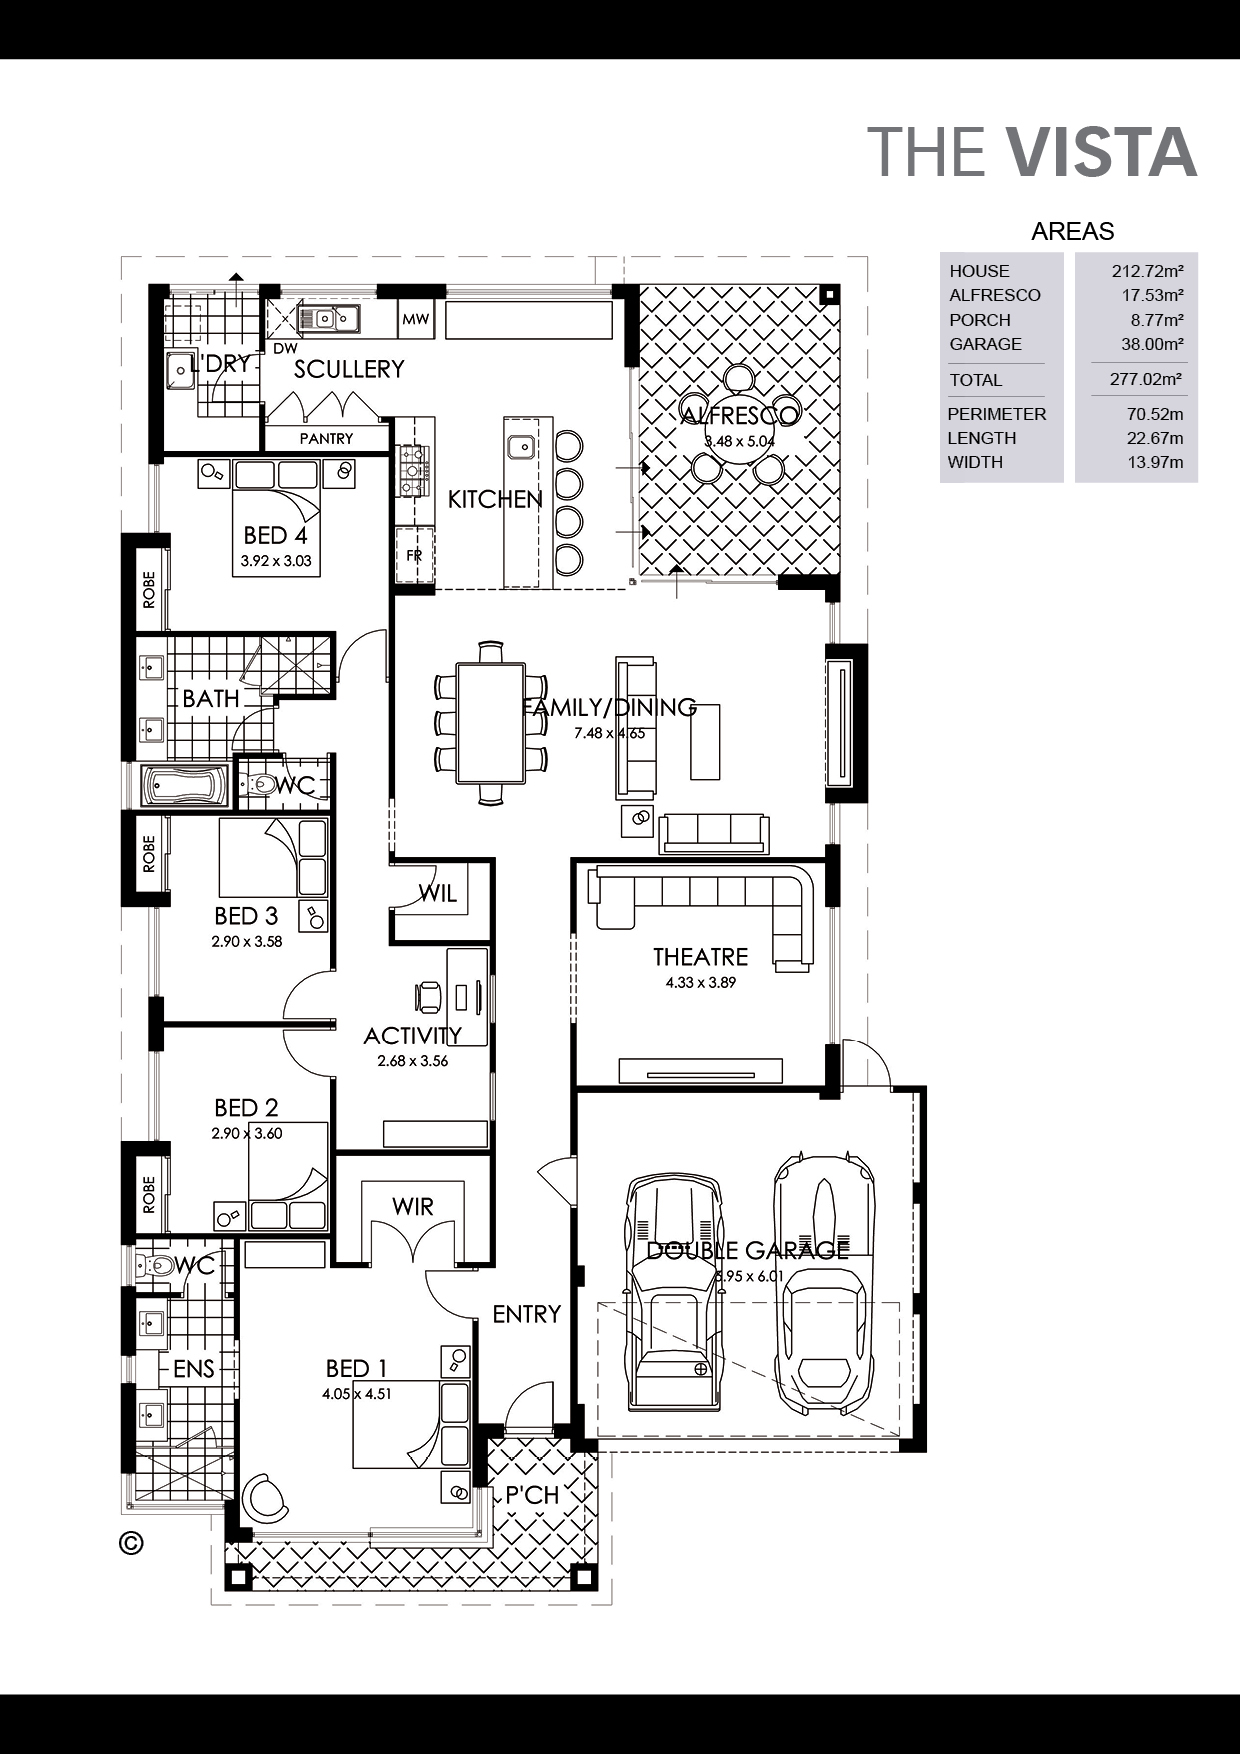 The Vista Floorplan